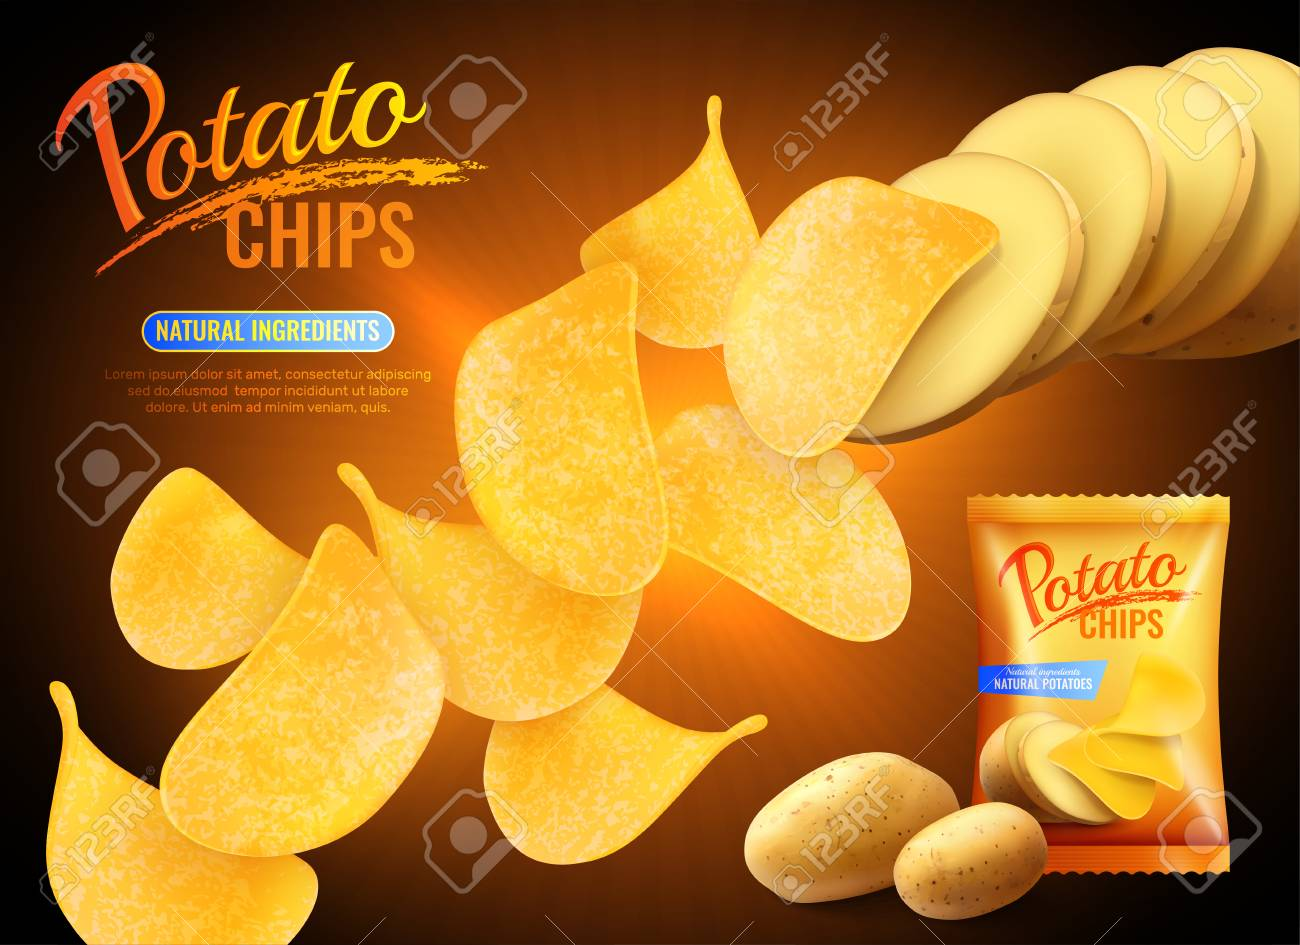 Potato chips advertising composition with realistic images of crisps natural potatoes and pack shot with text vector illustration - 100725339